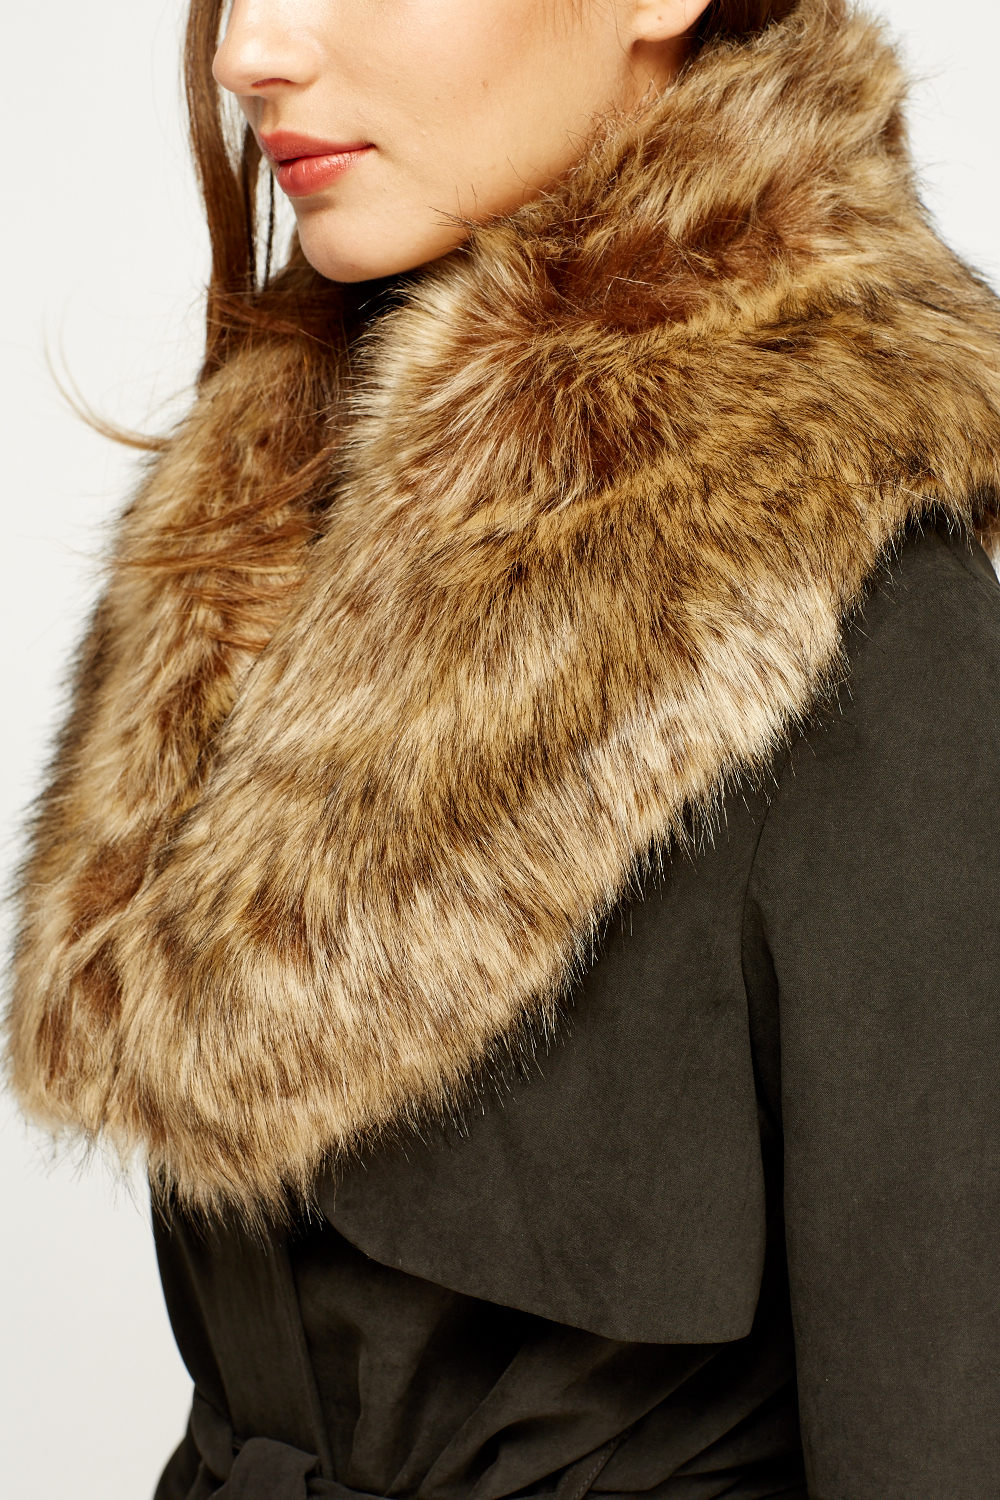 Jones New York Faux Fur Collar Leather Coat. by Jones New York. $ $ FREE Shipping on eligible orders. See Details. Jones New York Black Brown Faux Soft Fur Flared Silhouette Winter Coat M. by Jones New York. $ $ 99 + $ shipping. Jones New York Women's Reversible Faux Fur .